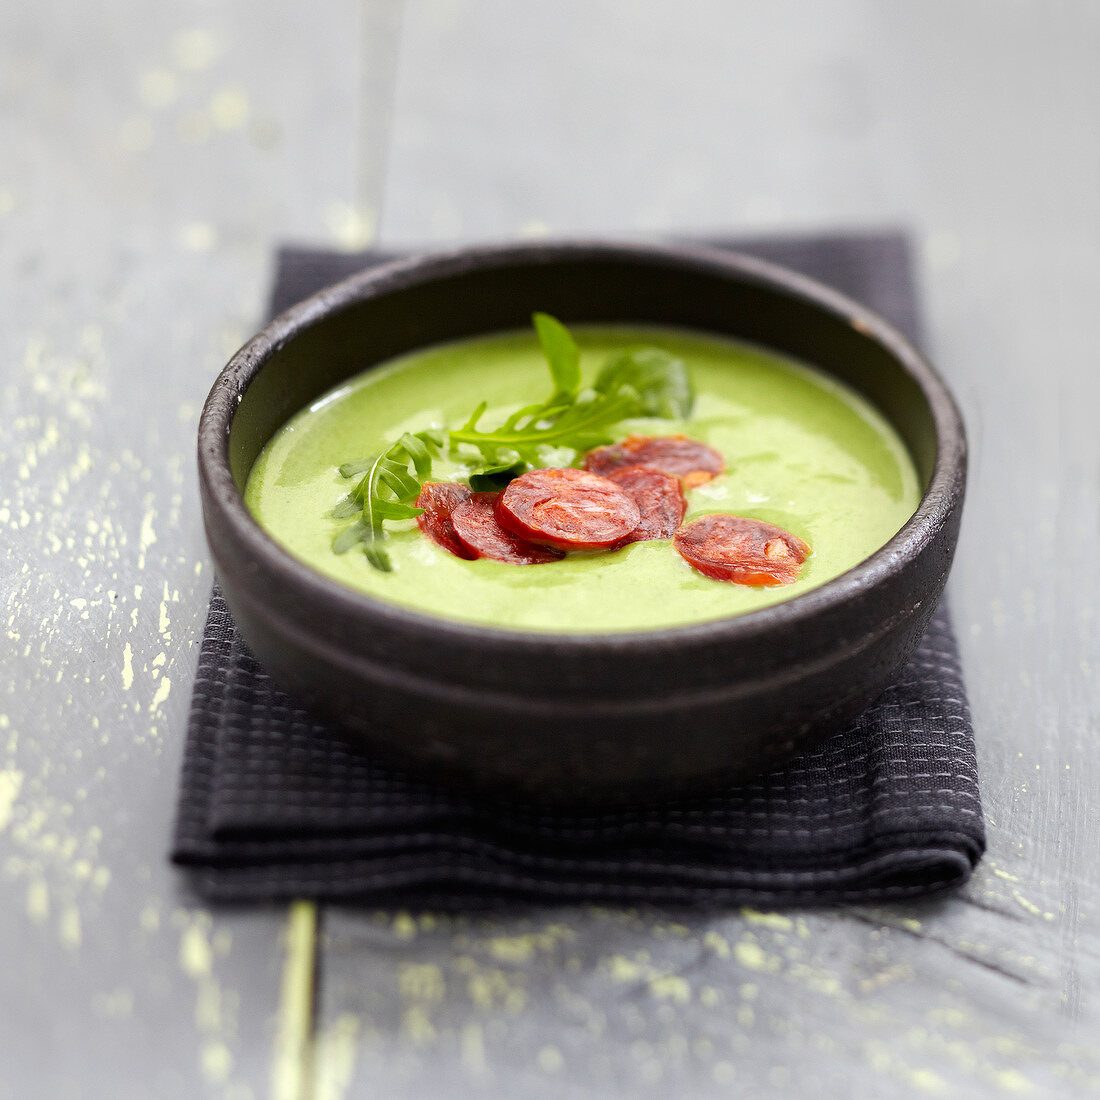 Cream of watercress and rocket lettuce soup with chorizo